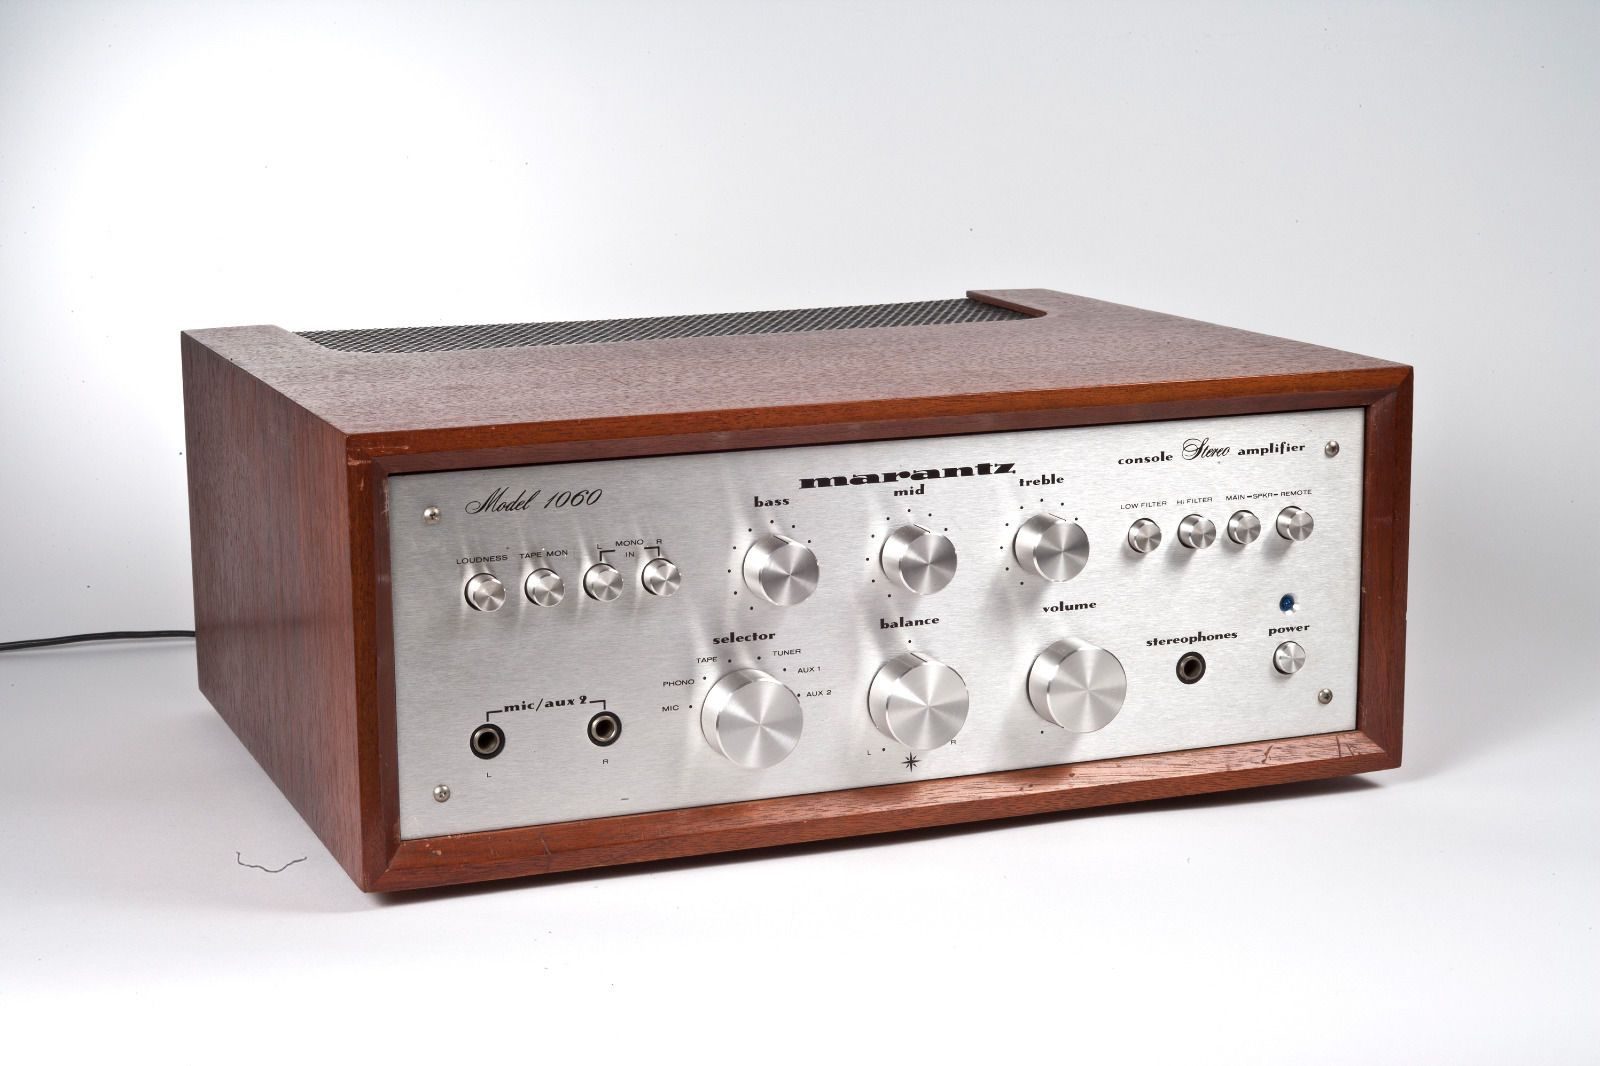 medium resolution of marantz 1060 integrated amp with wc 10 wooden case 30 watts per channel